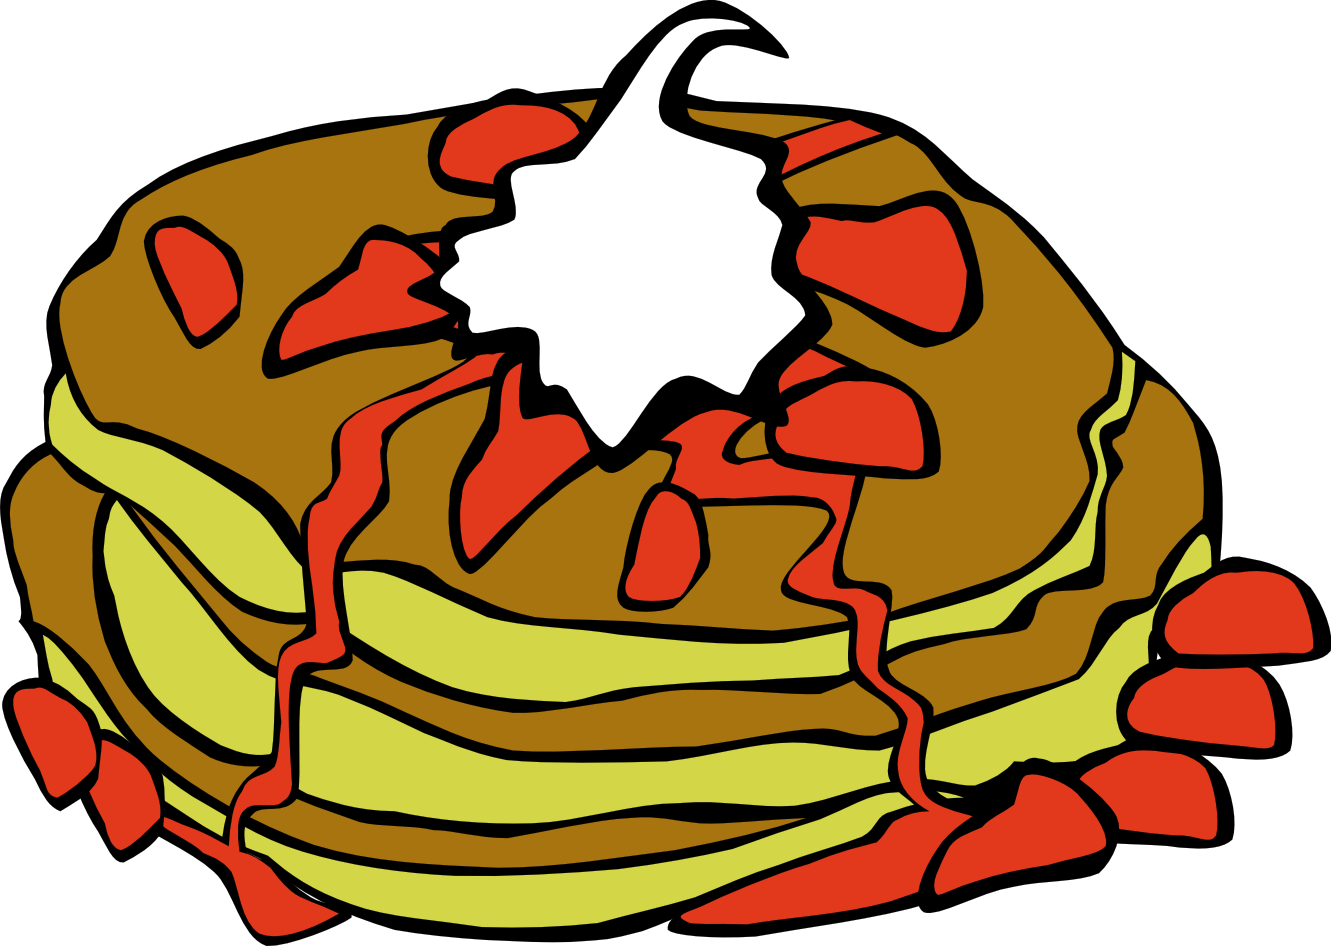 Animated food. Clipart free download best